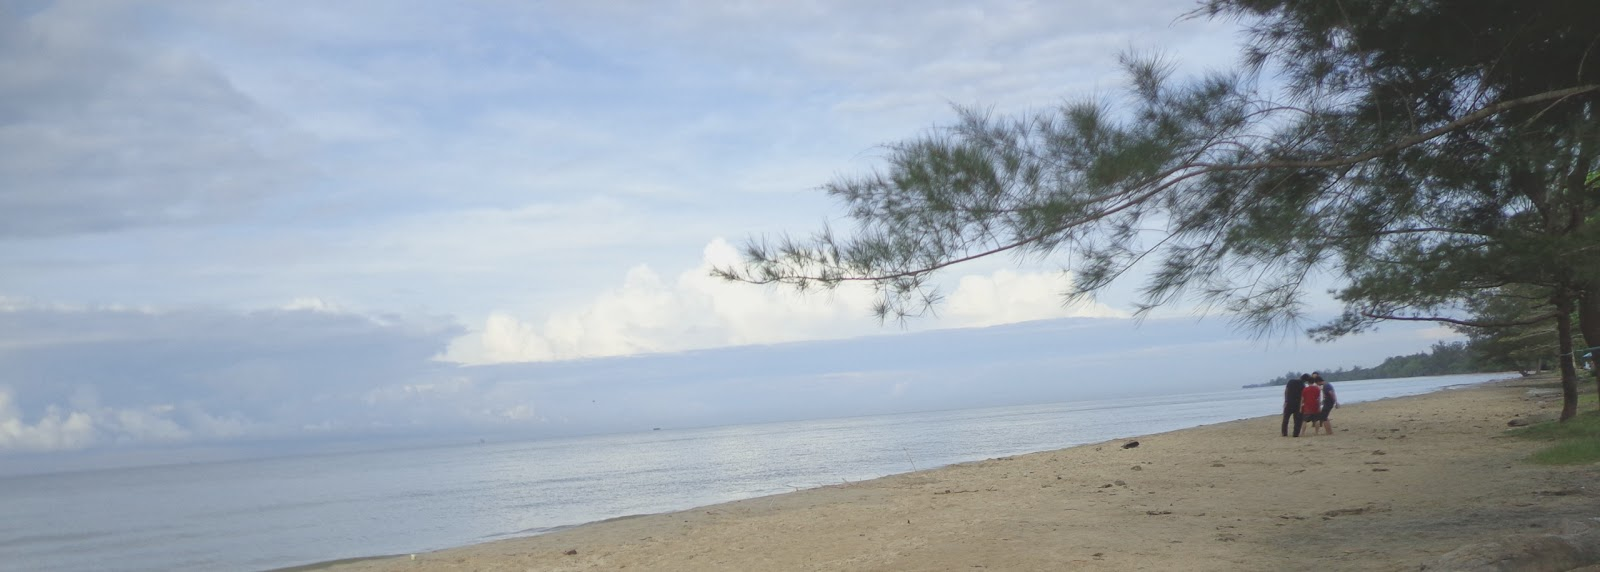 Rabu, Juni 12, 2013 Posted by Nuris Traveling 17 comments